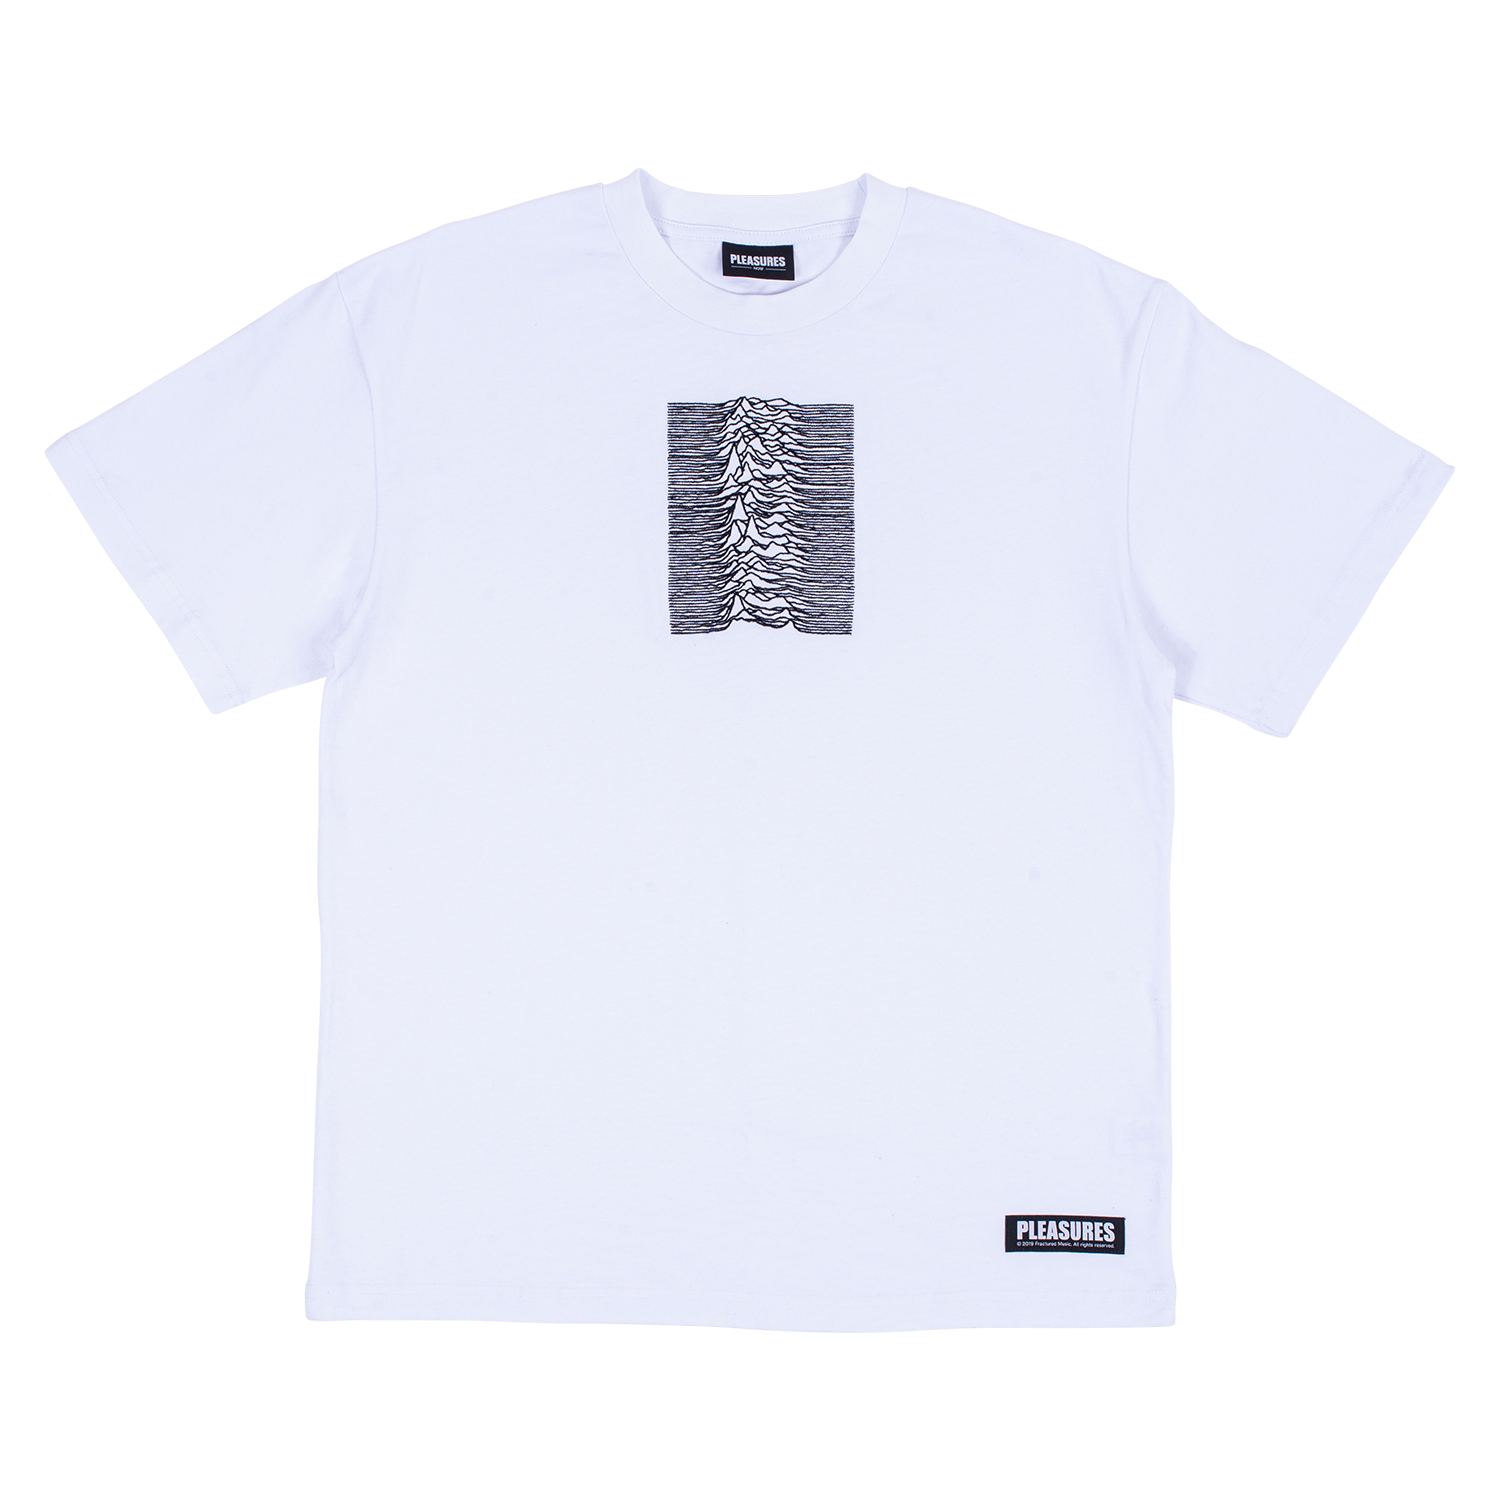 Pleasures x Joy Division Shadowplay Heavyweight Short Sleeve Shirt (White)